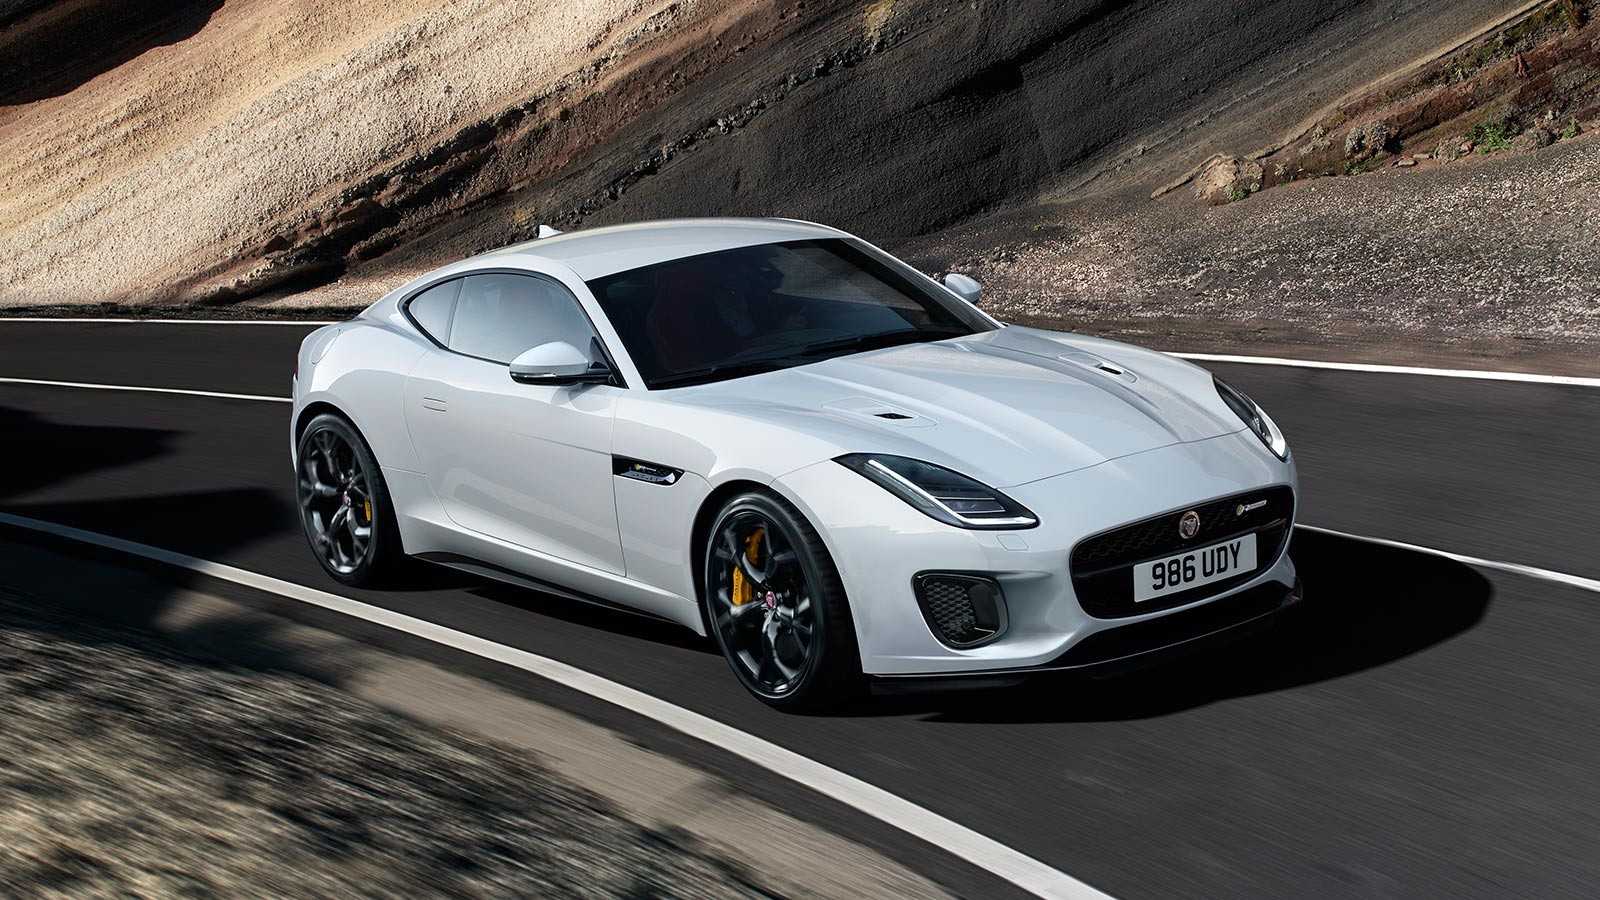 F-TYPE R IN YULONG WHITE WITH OPTIONAL FEATURES FITTED.